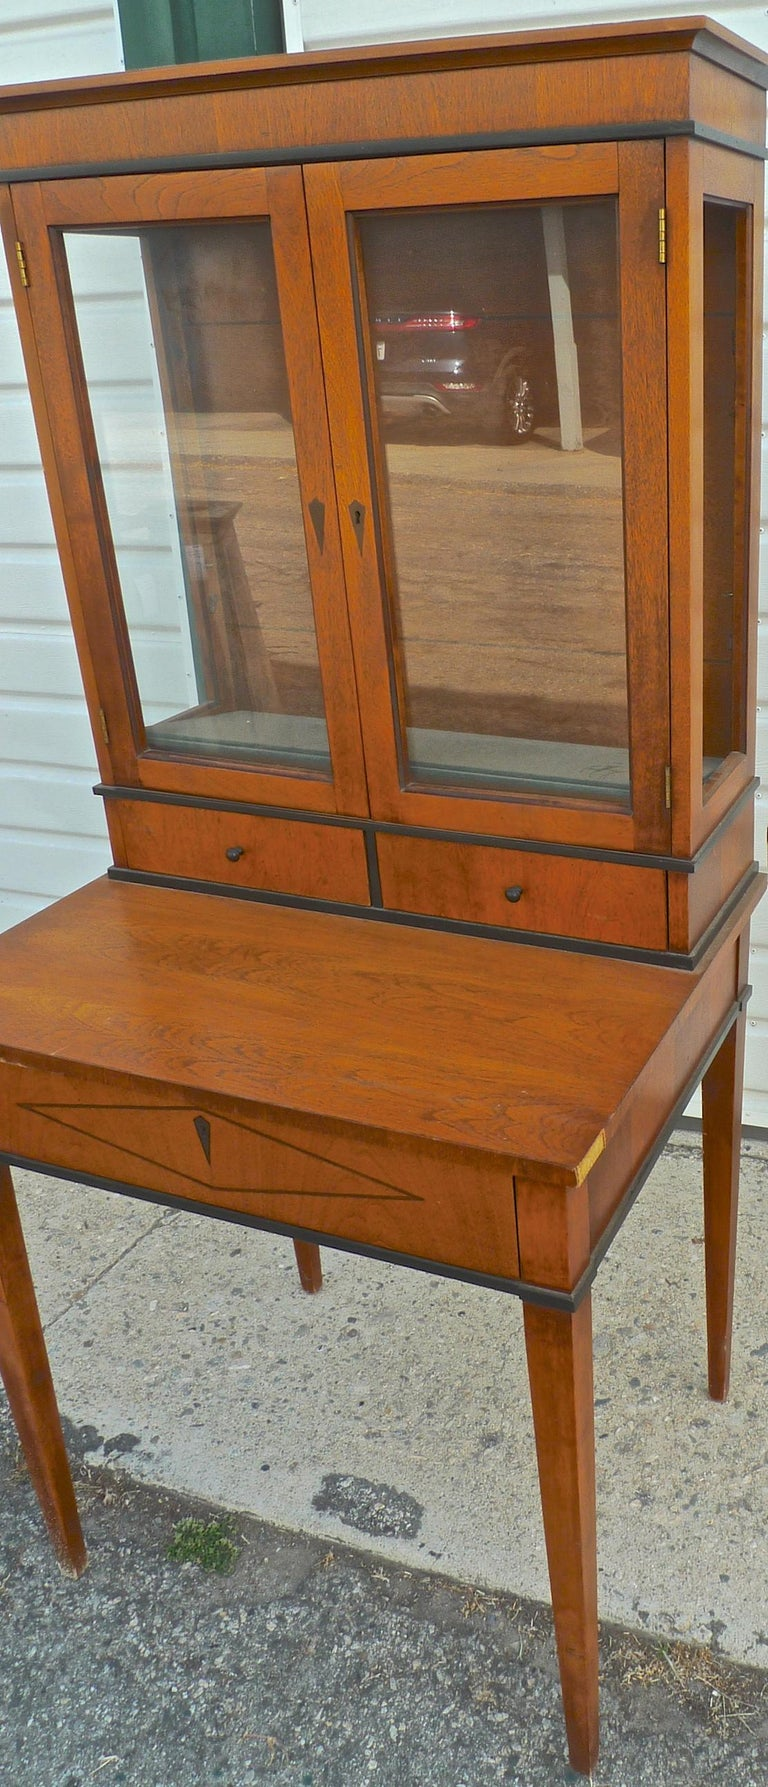 French Biedermeier 1940s birchwood desk with three drawers and two glass cabinet doors and two glass shelves.